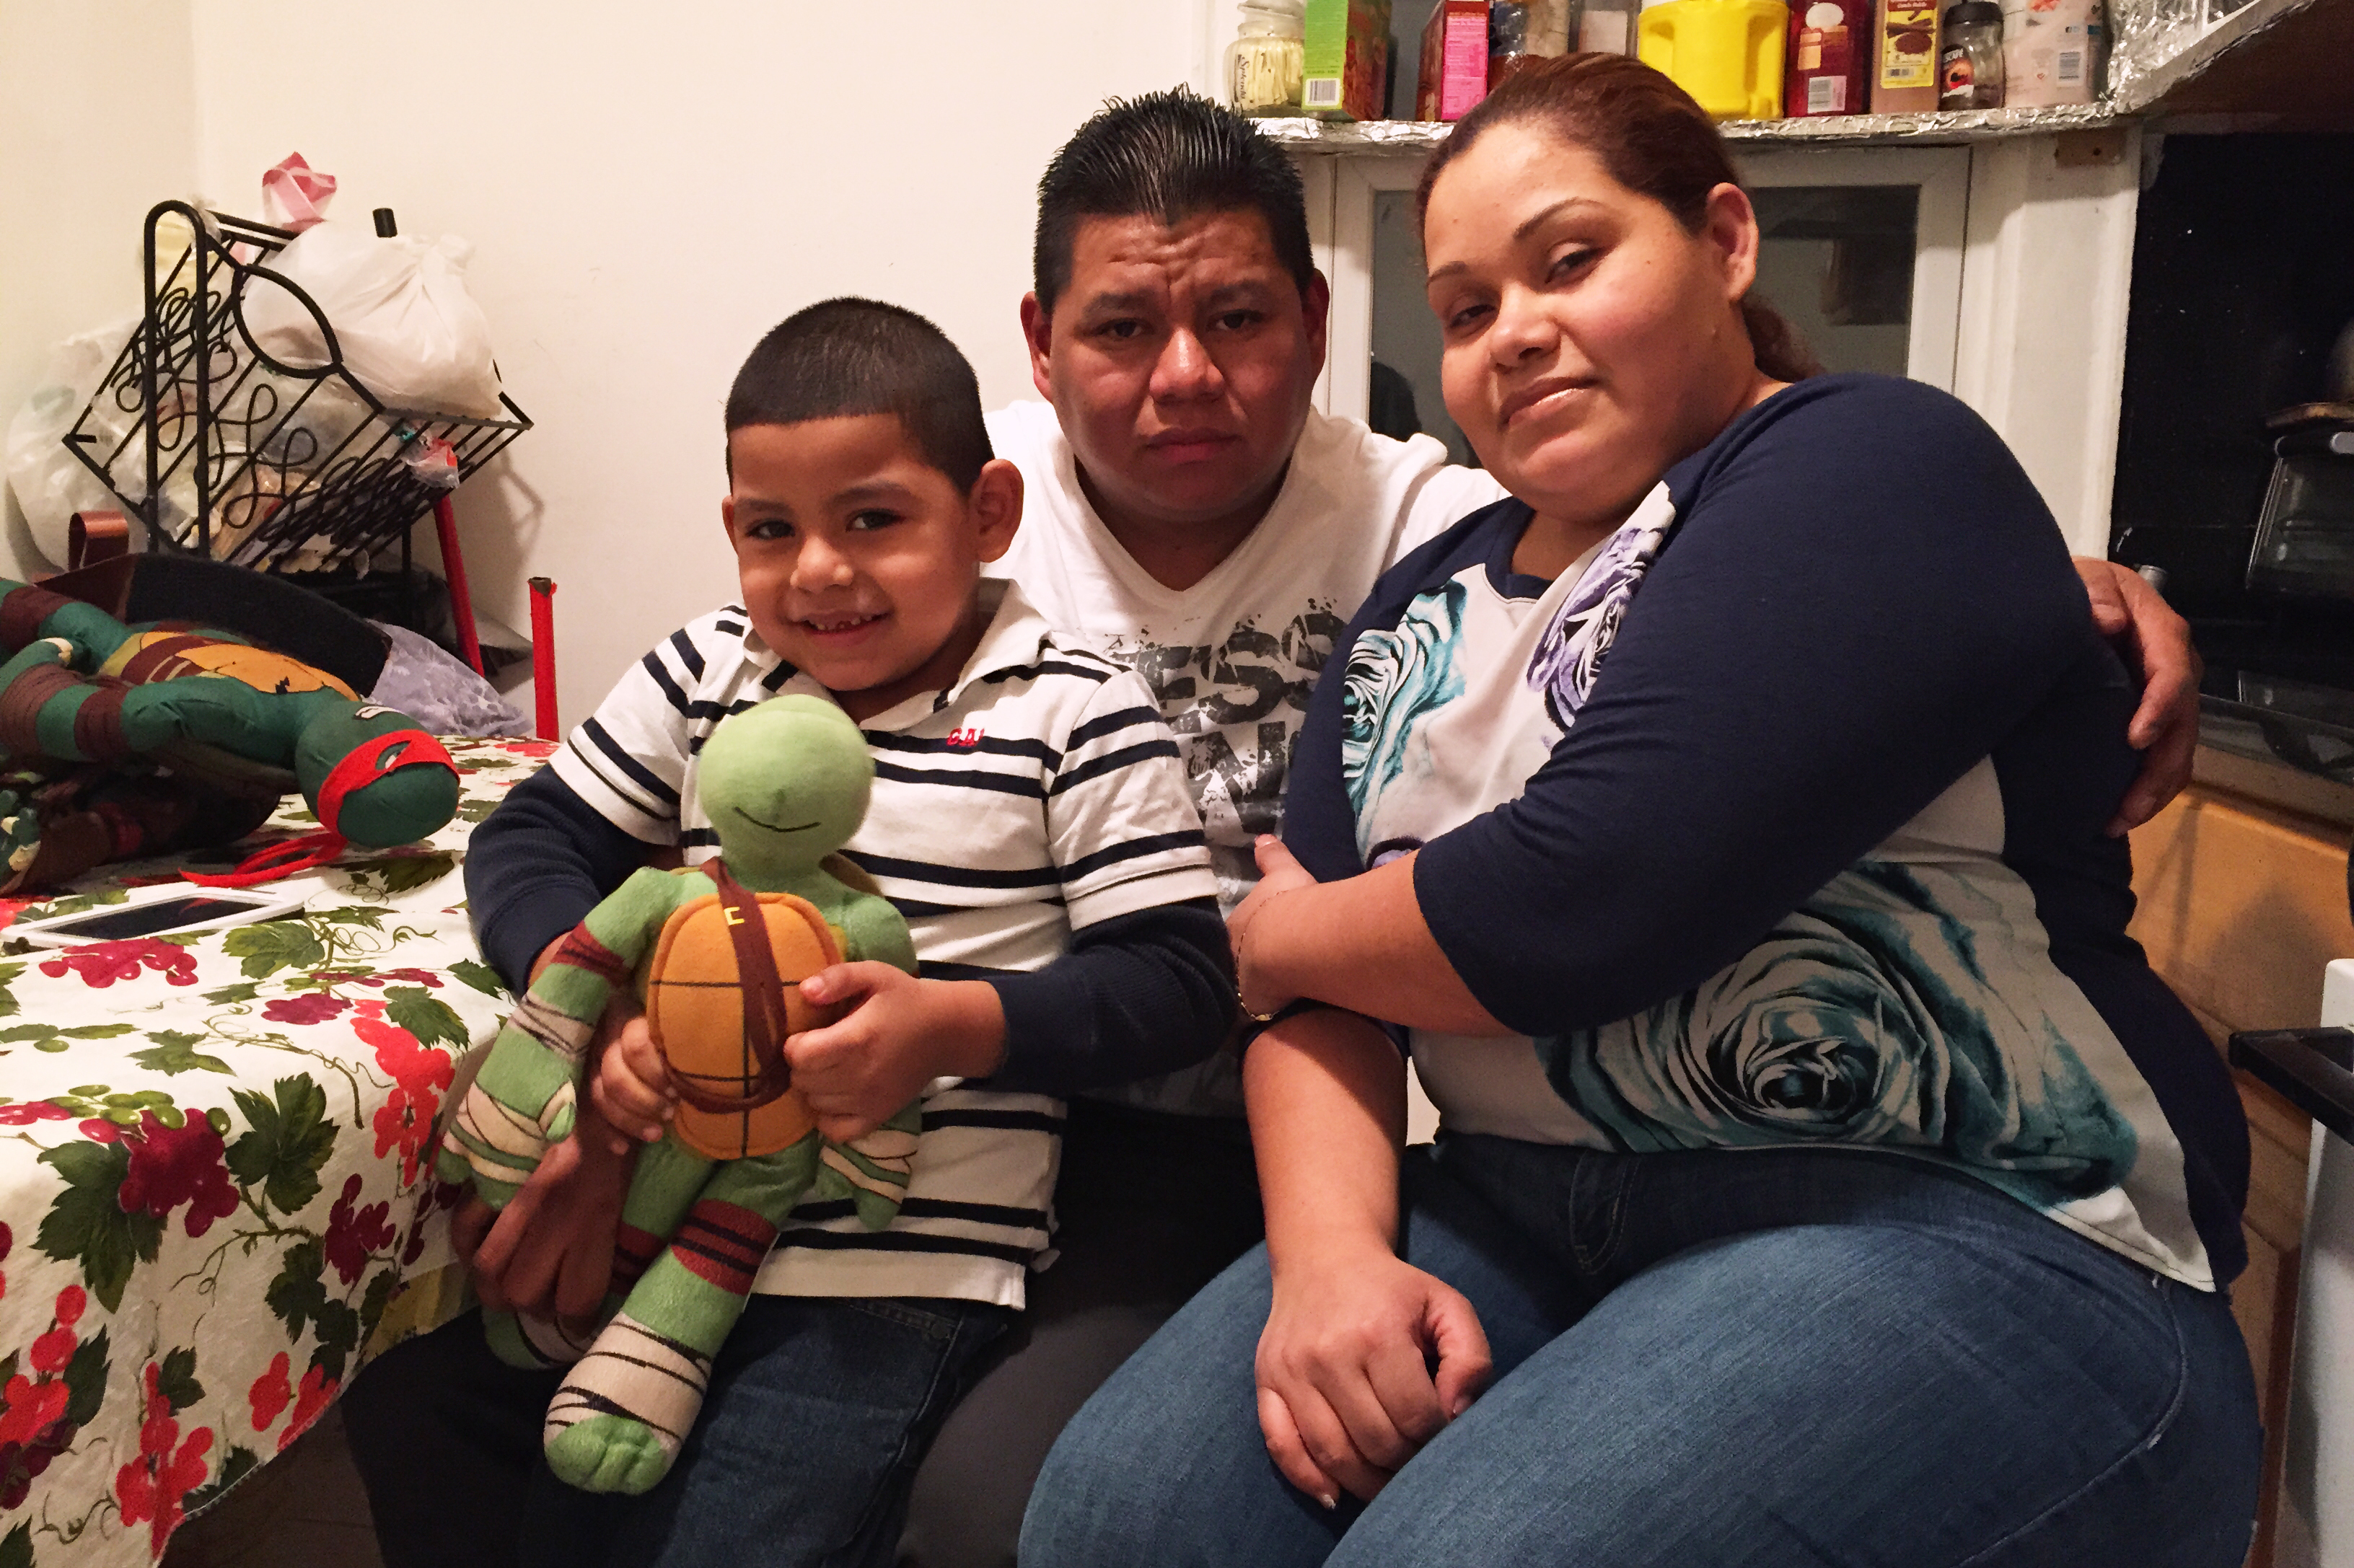 Immigrants Worry They'll Face Deportation After Deferred Action Delay